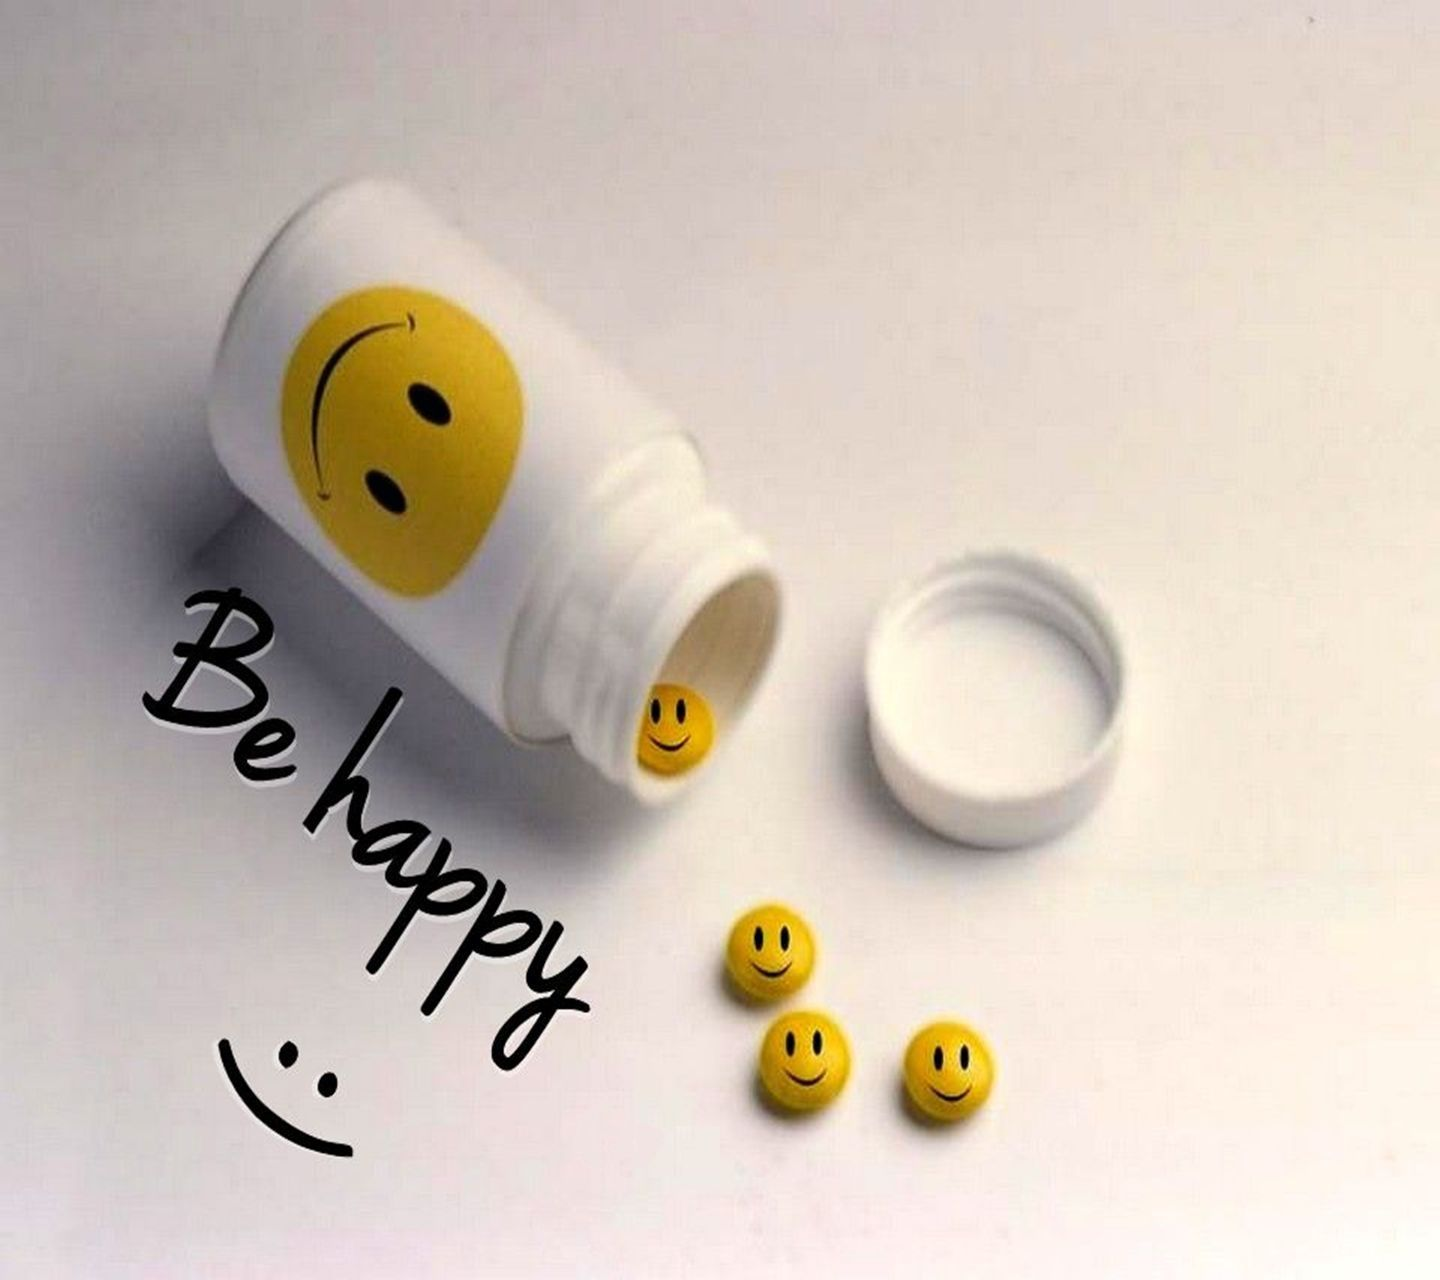 awesome smiley wallpaper 1440×900 smiley pics wallpapers (44